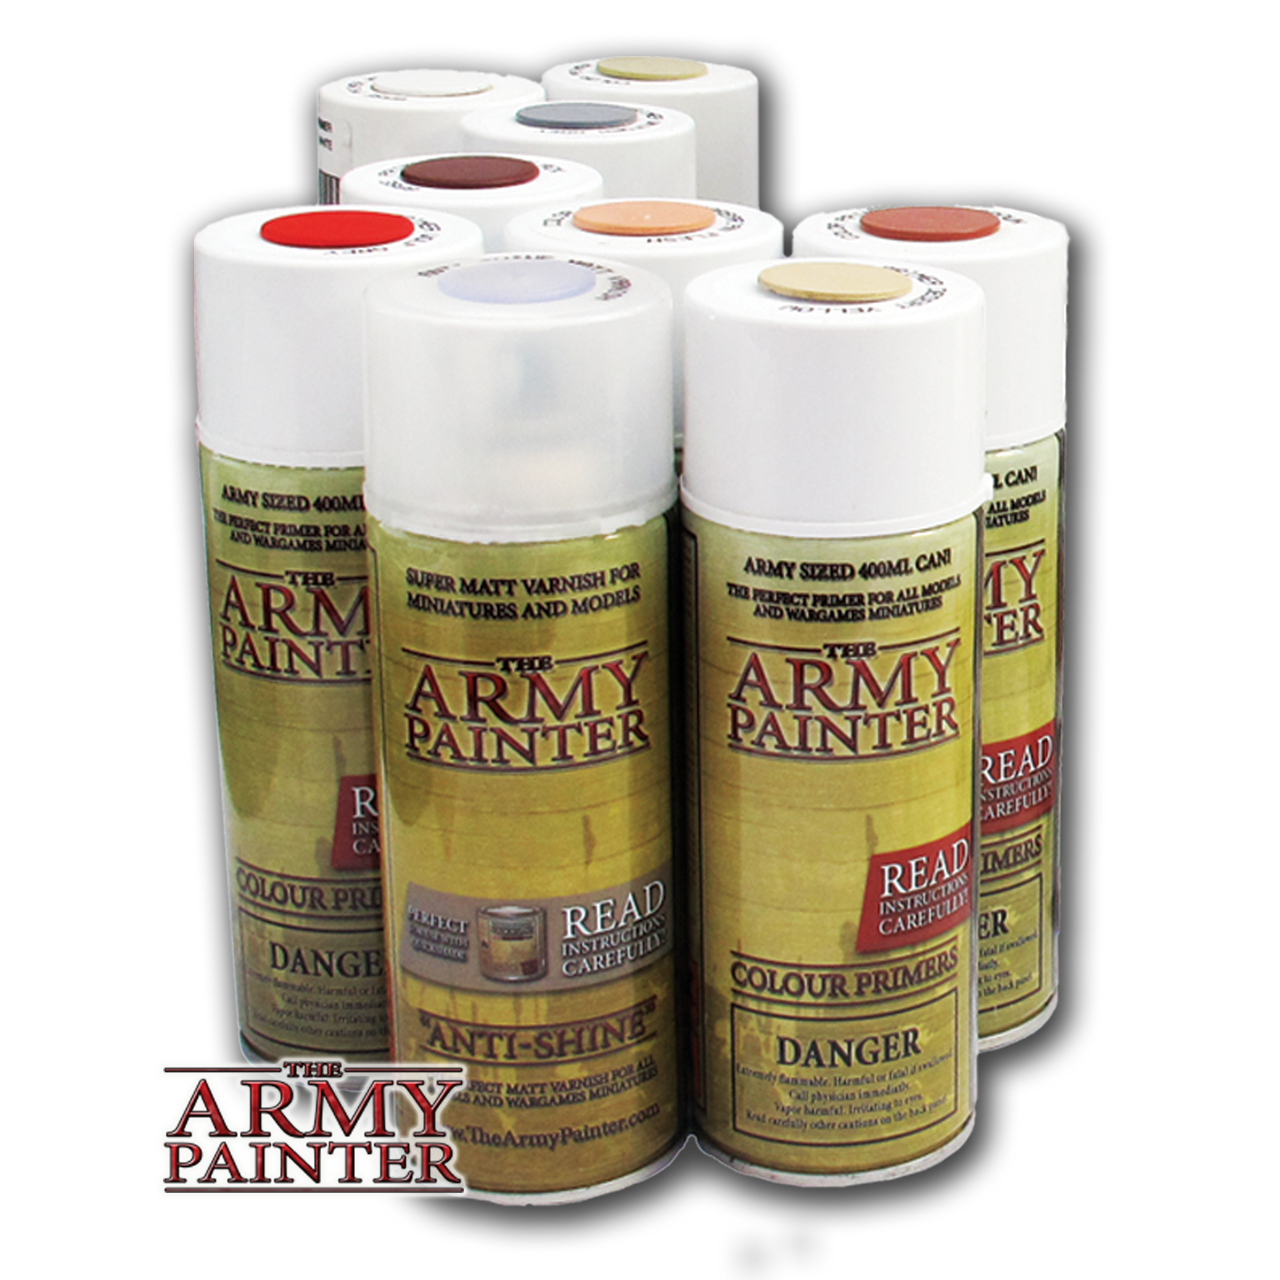 13 95 Army Painter Miniatures Primers And Varnishes Spray Paints Various Colors Army Painter Miniature Spray Paints Miniatures Air Brush Painting